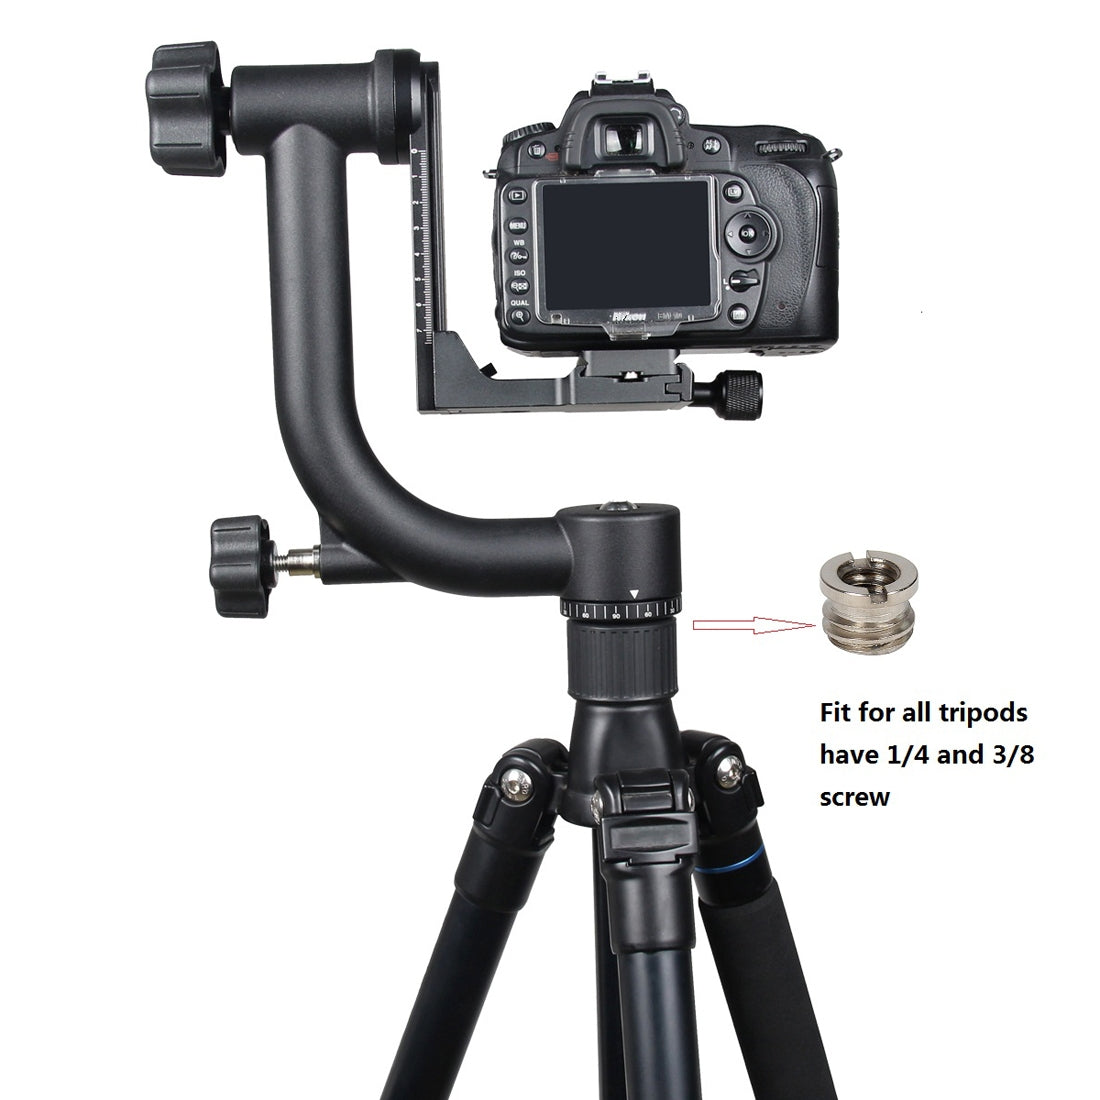 Horizontal 360 Degree Gimbal Tripod Head for Home DV and SLR Cameras(Black)